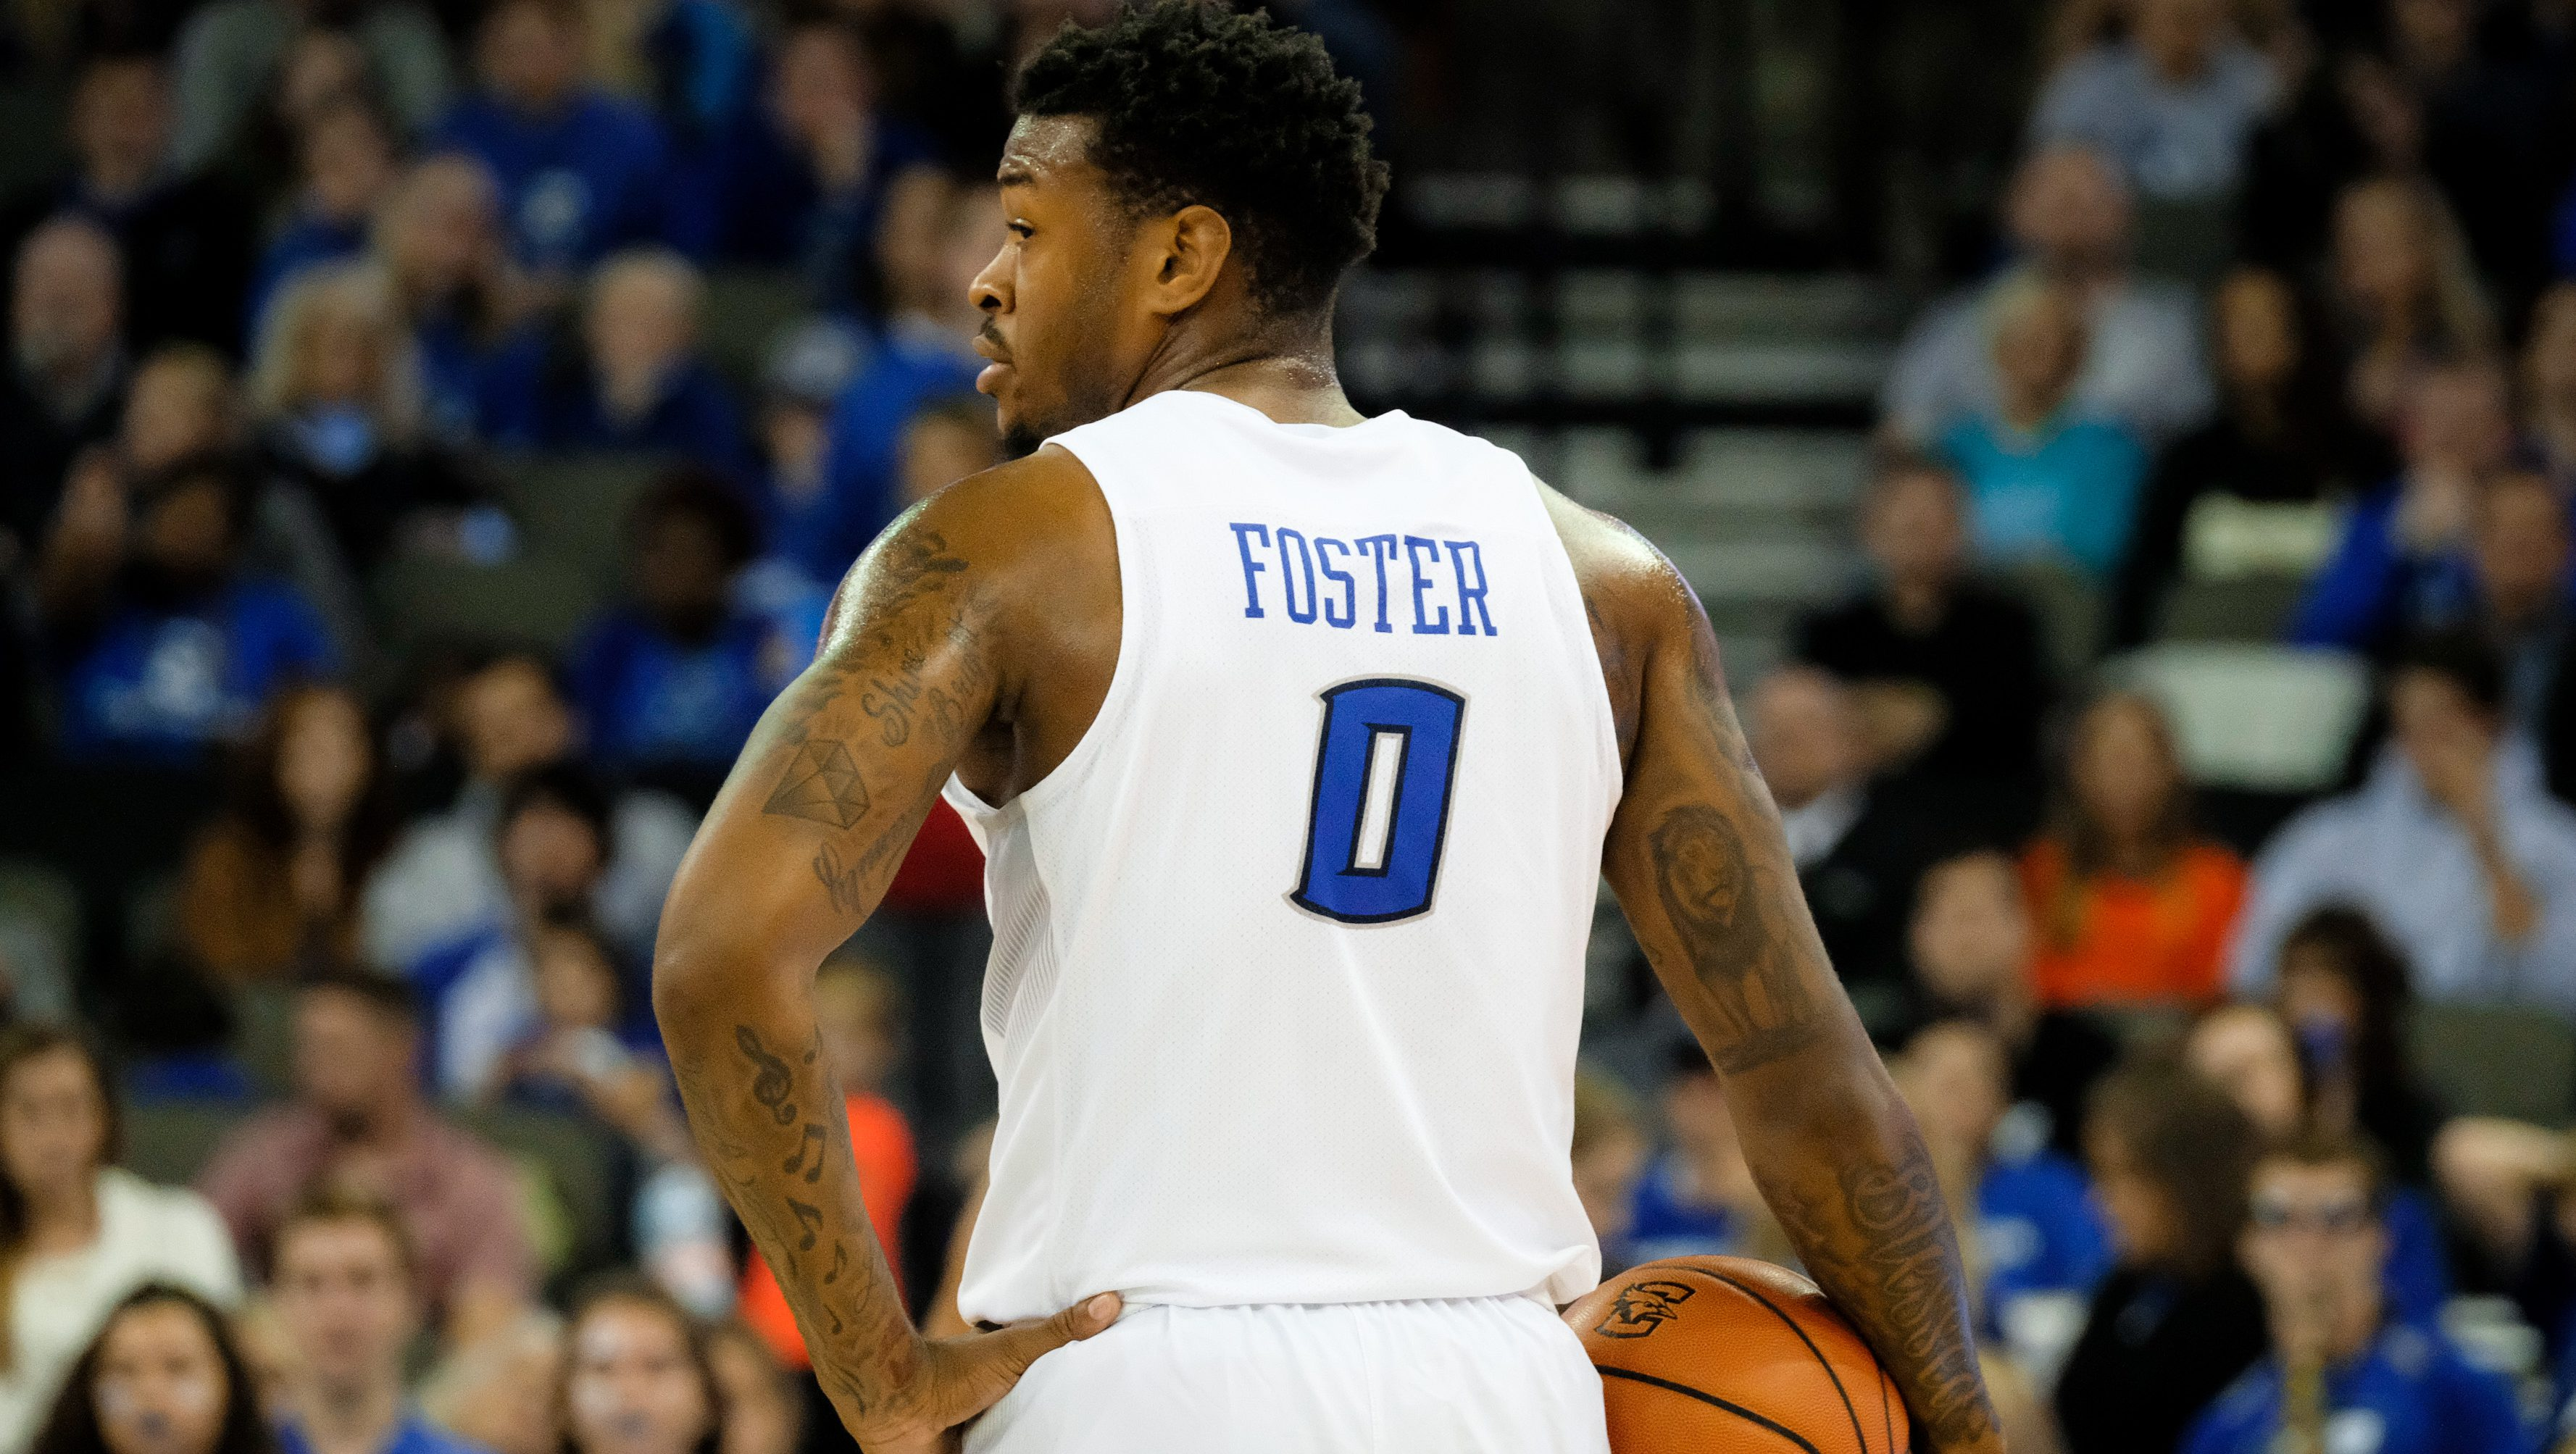 OMAHA, NEBRASKA-NOVEMBER 26: Marcus Foster #0 of the Creighton Bluejays take s a break during their game against the Loyola (Md) Greyhounds at the CenturyLink Center on November 26, 2016 in Omaha, Nebraska. (Photo by Eric Francis/Getty Images)